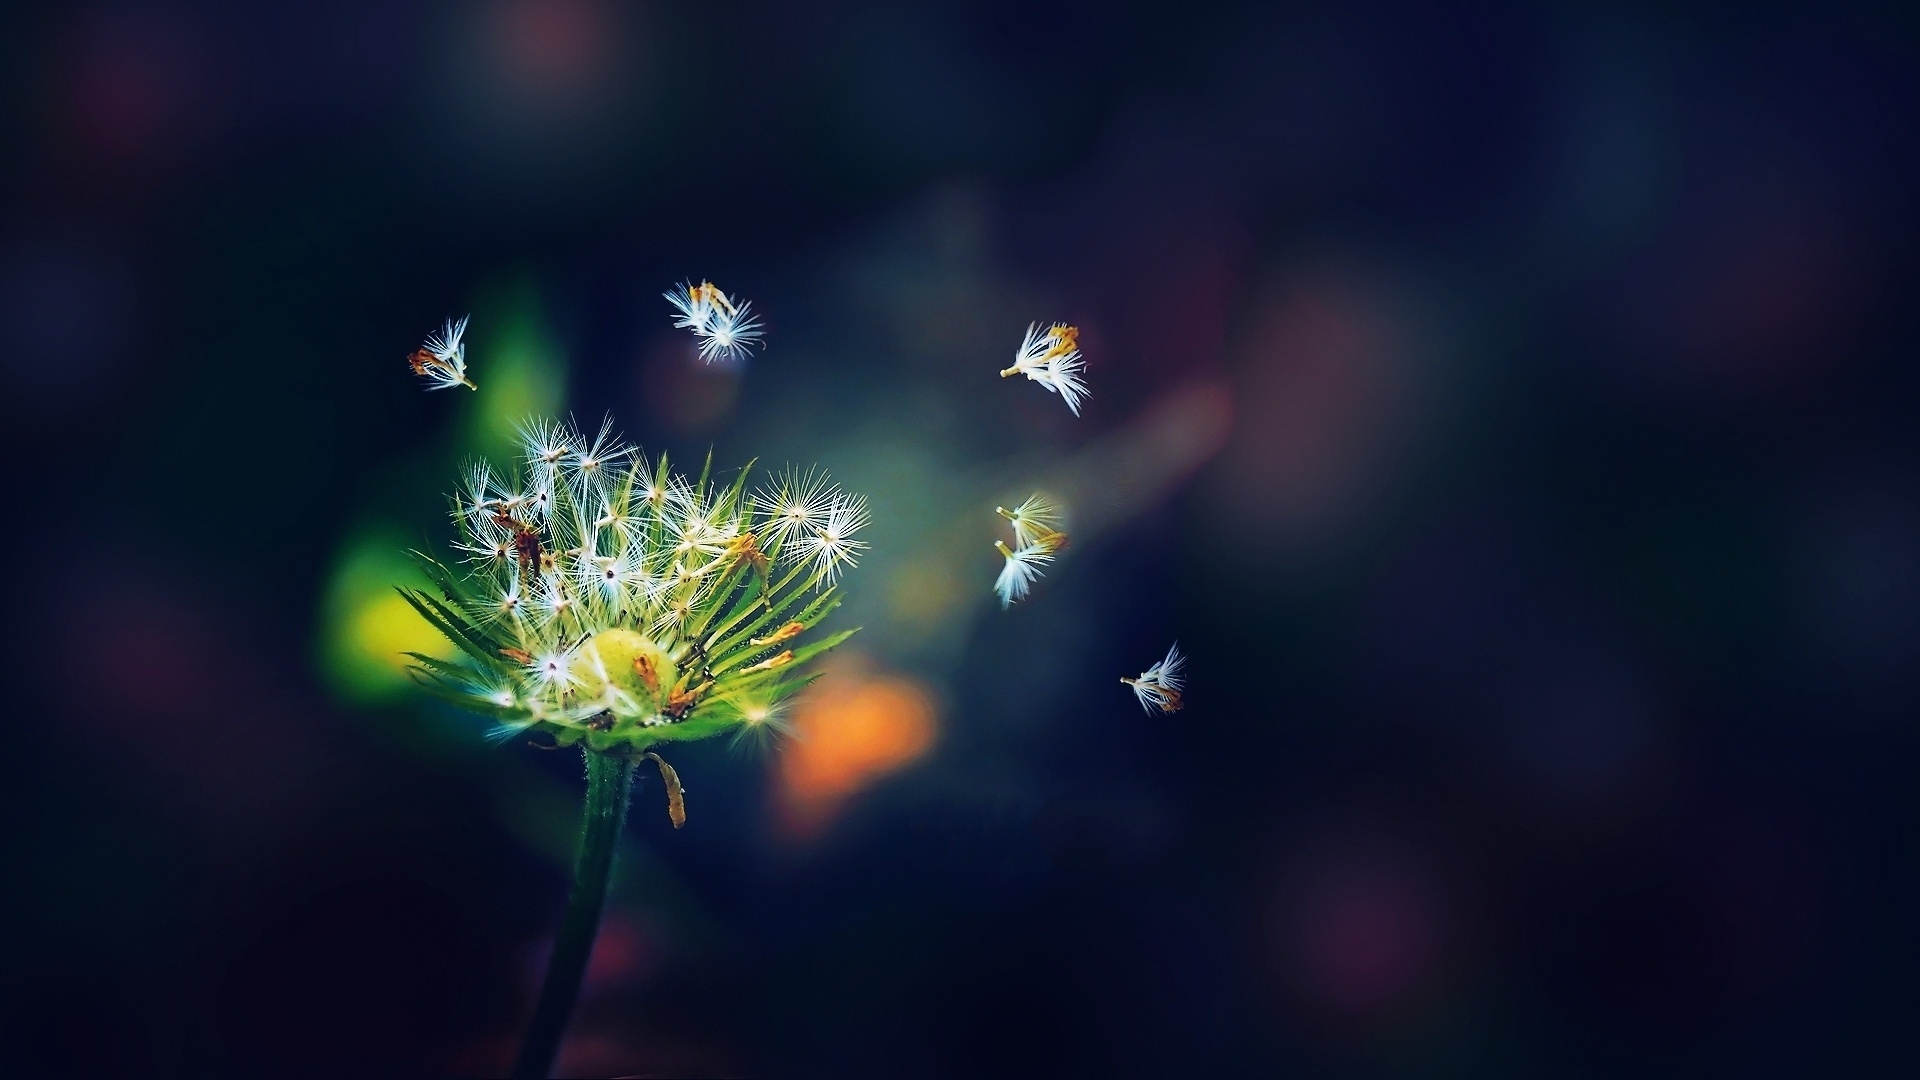 12 Pretty HD Dandelion Wallpapers